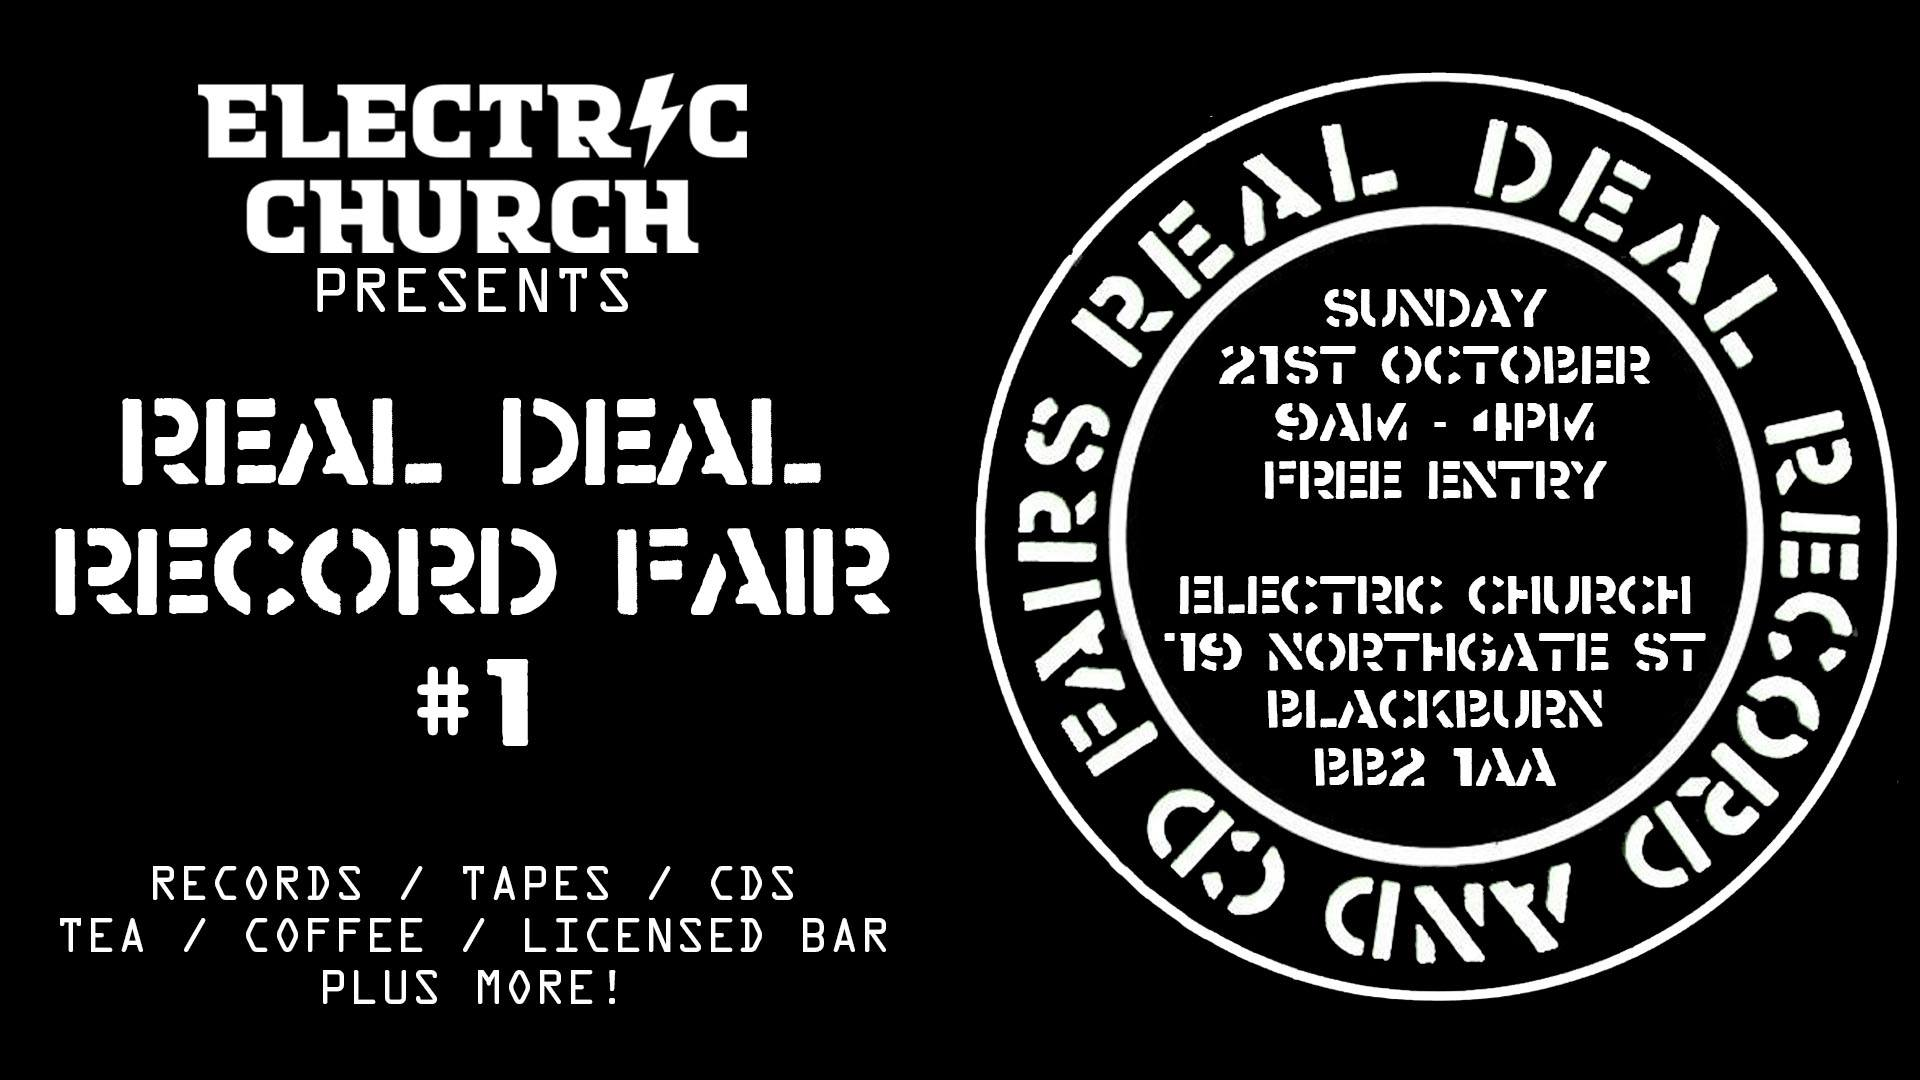 21 Electric Church Presents: Real Deal Record & CD Fairs #1